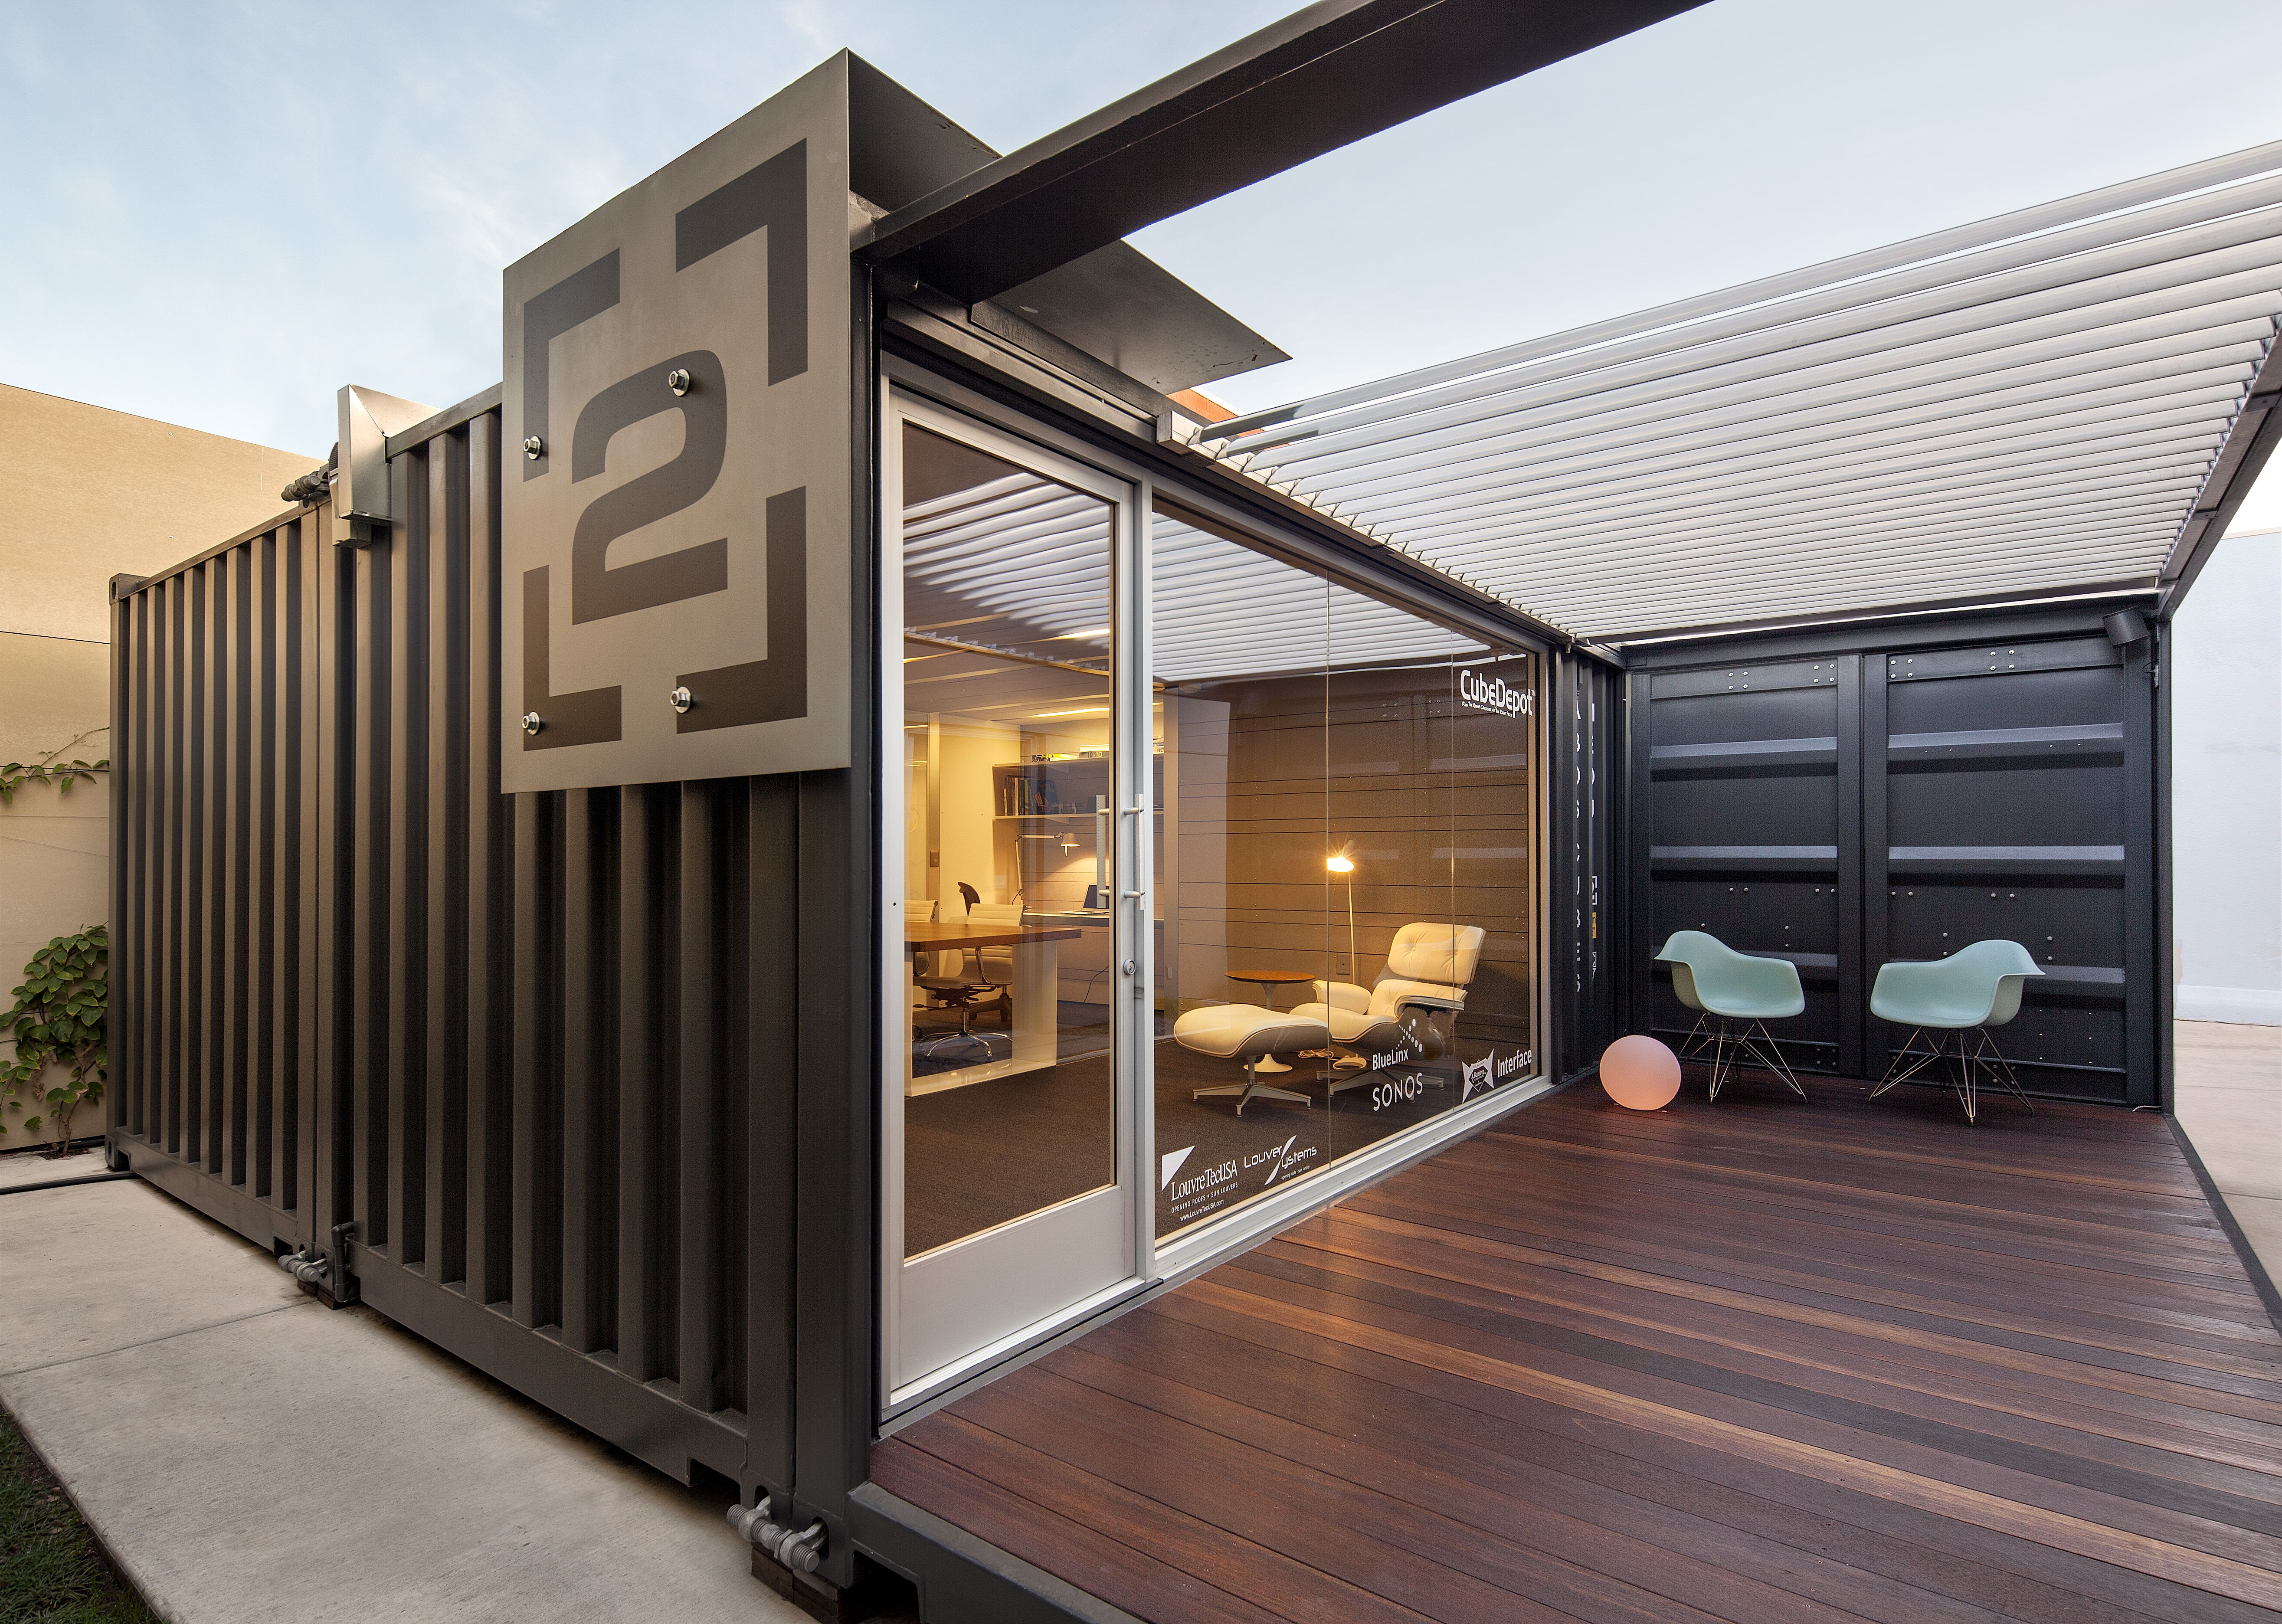 Interested in creative ways to reuse shipping containers ...